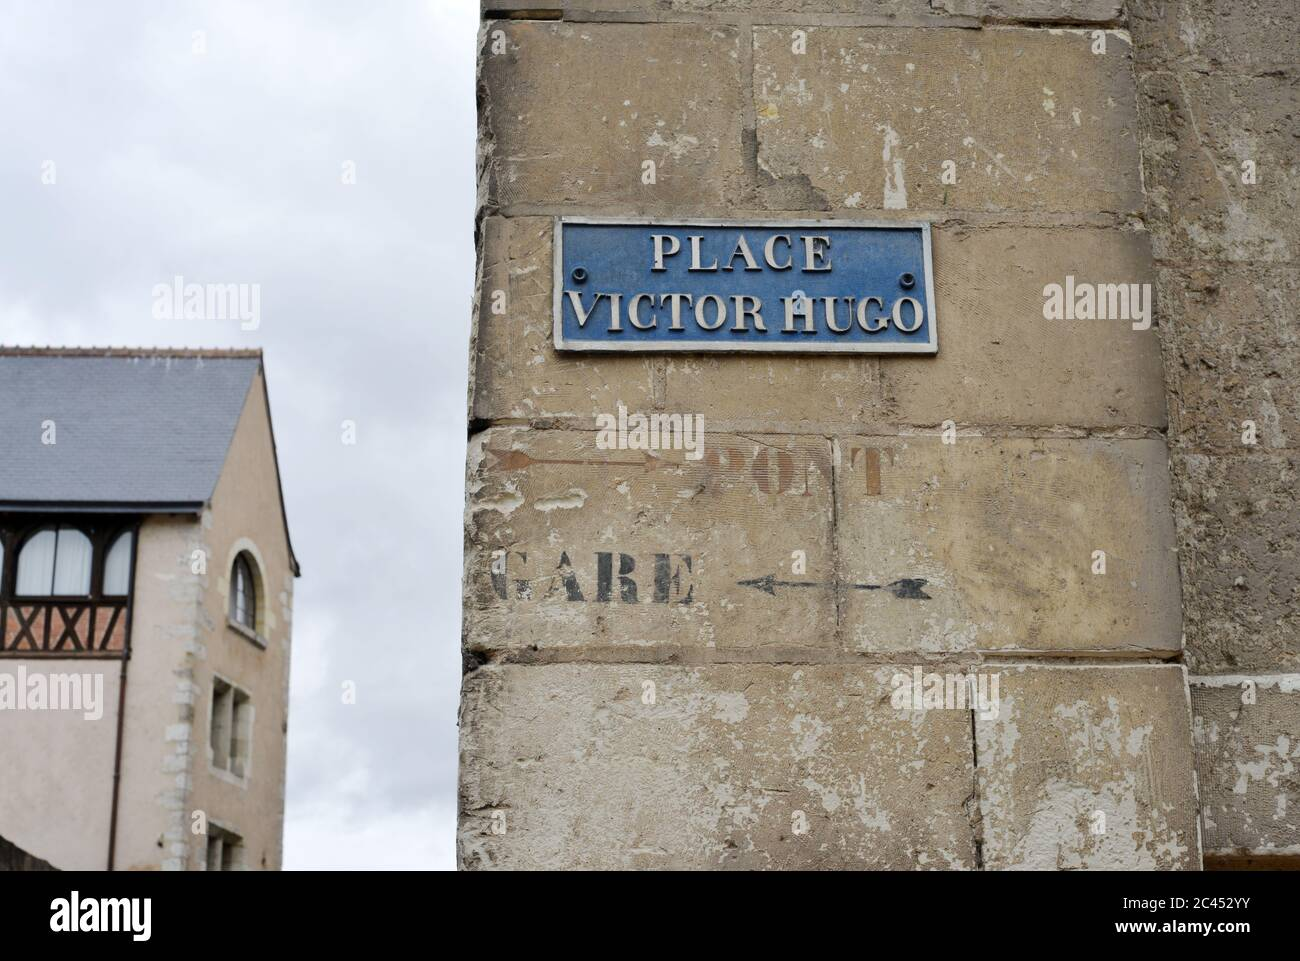 Place Victor Hugo and Indications Gare and Pont on a Wall France Stock Photo